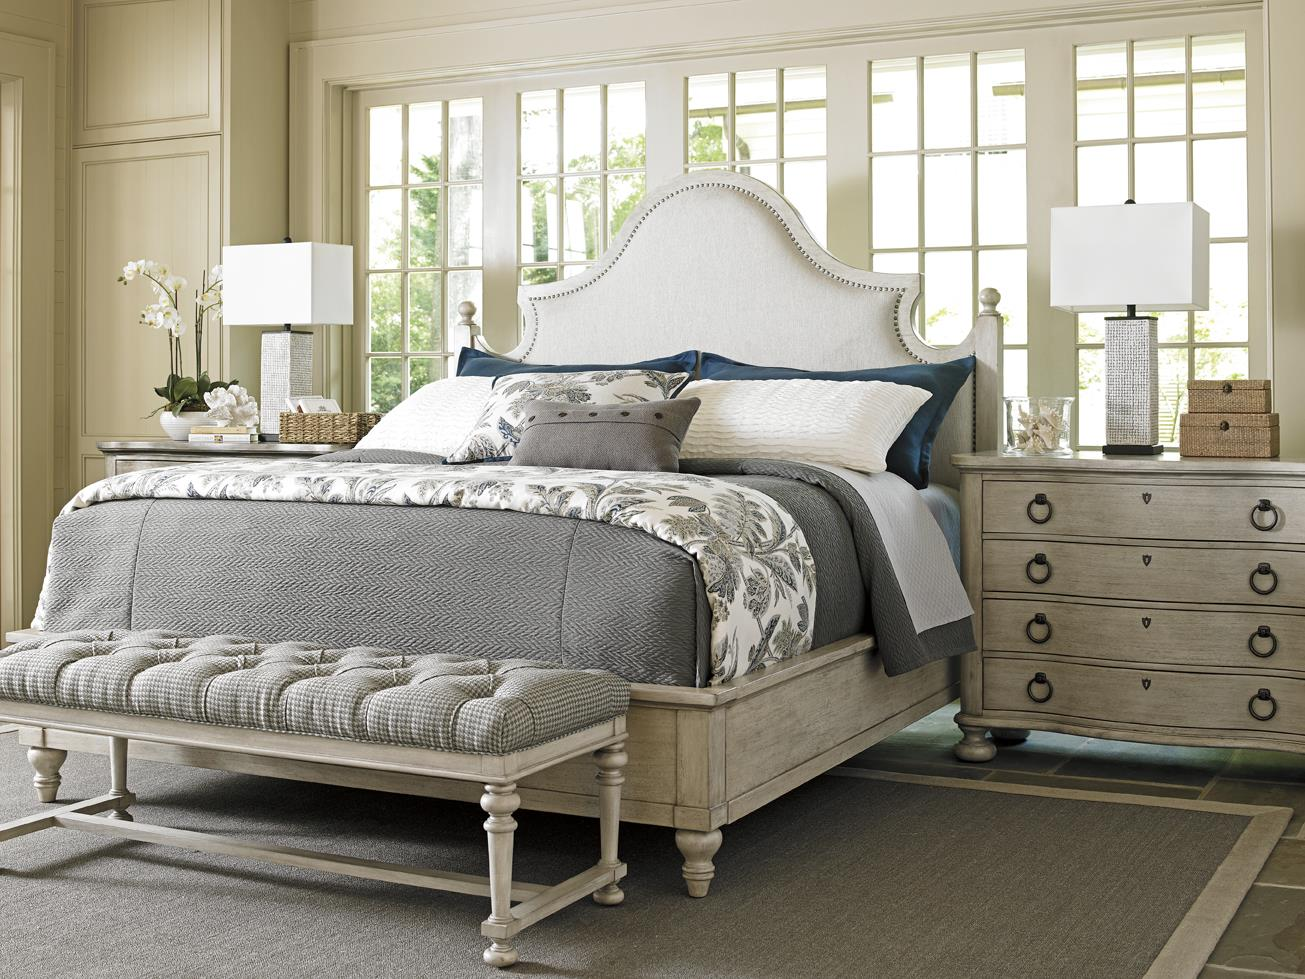 Oyster Bay King Bedroom Group by Lexington at Johnny Janosik